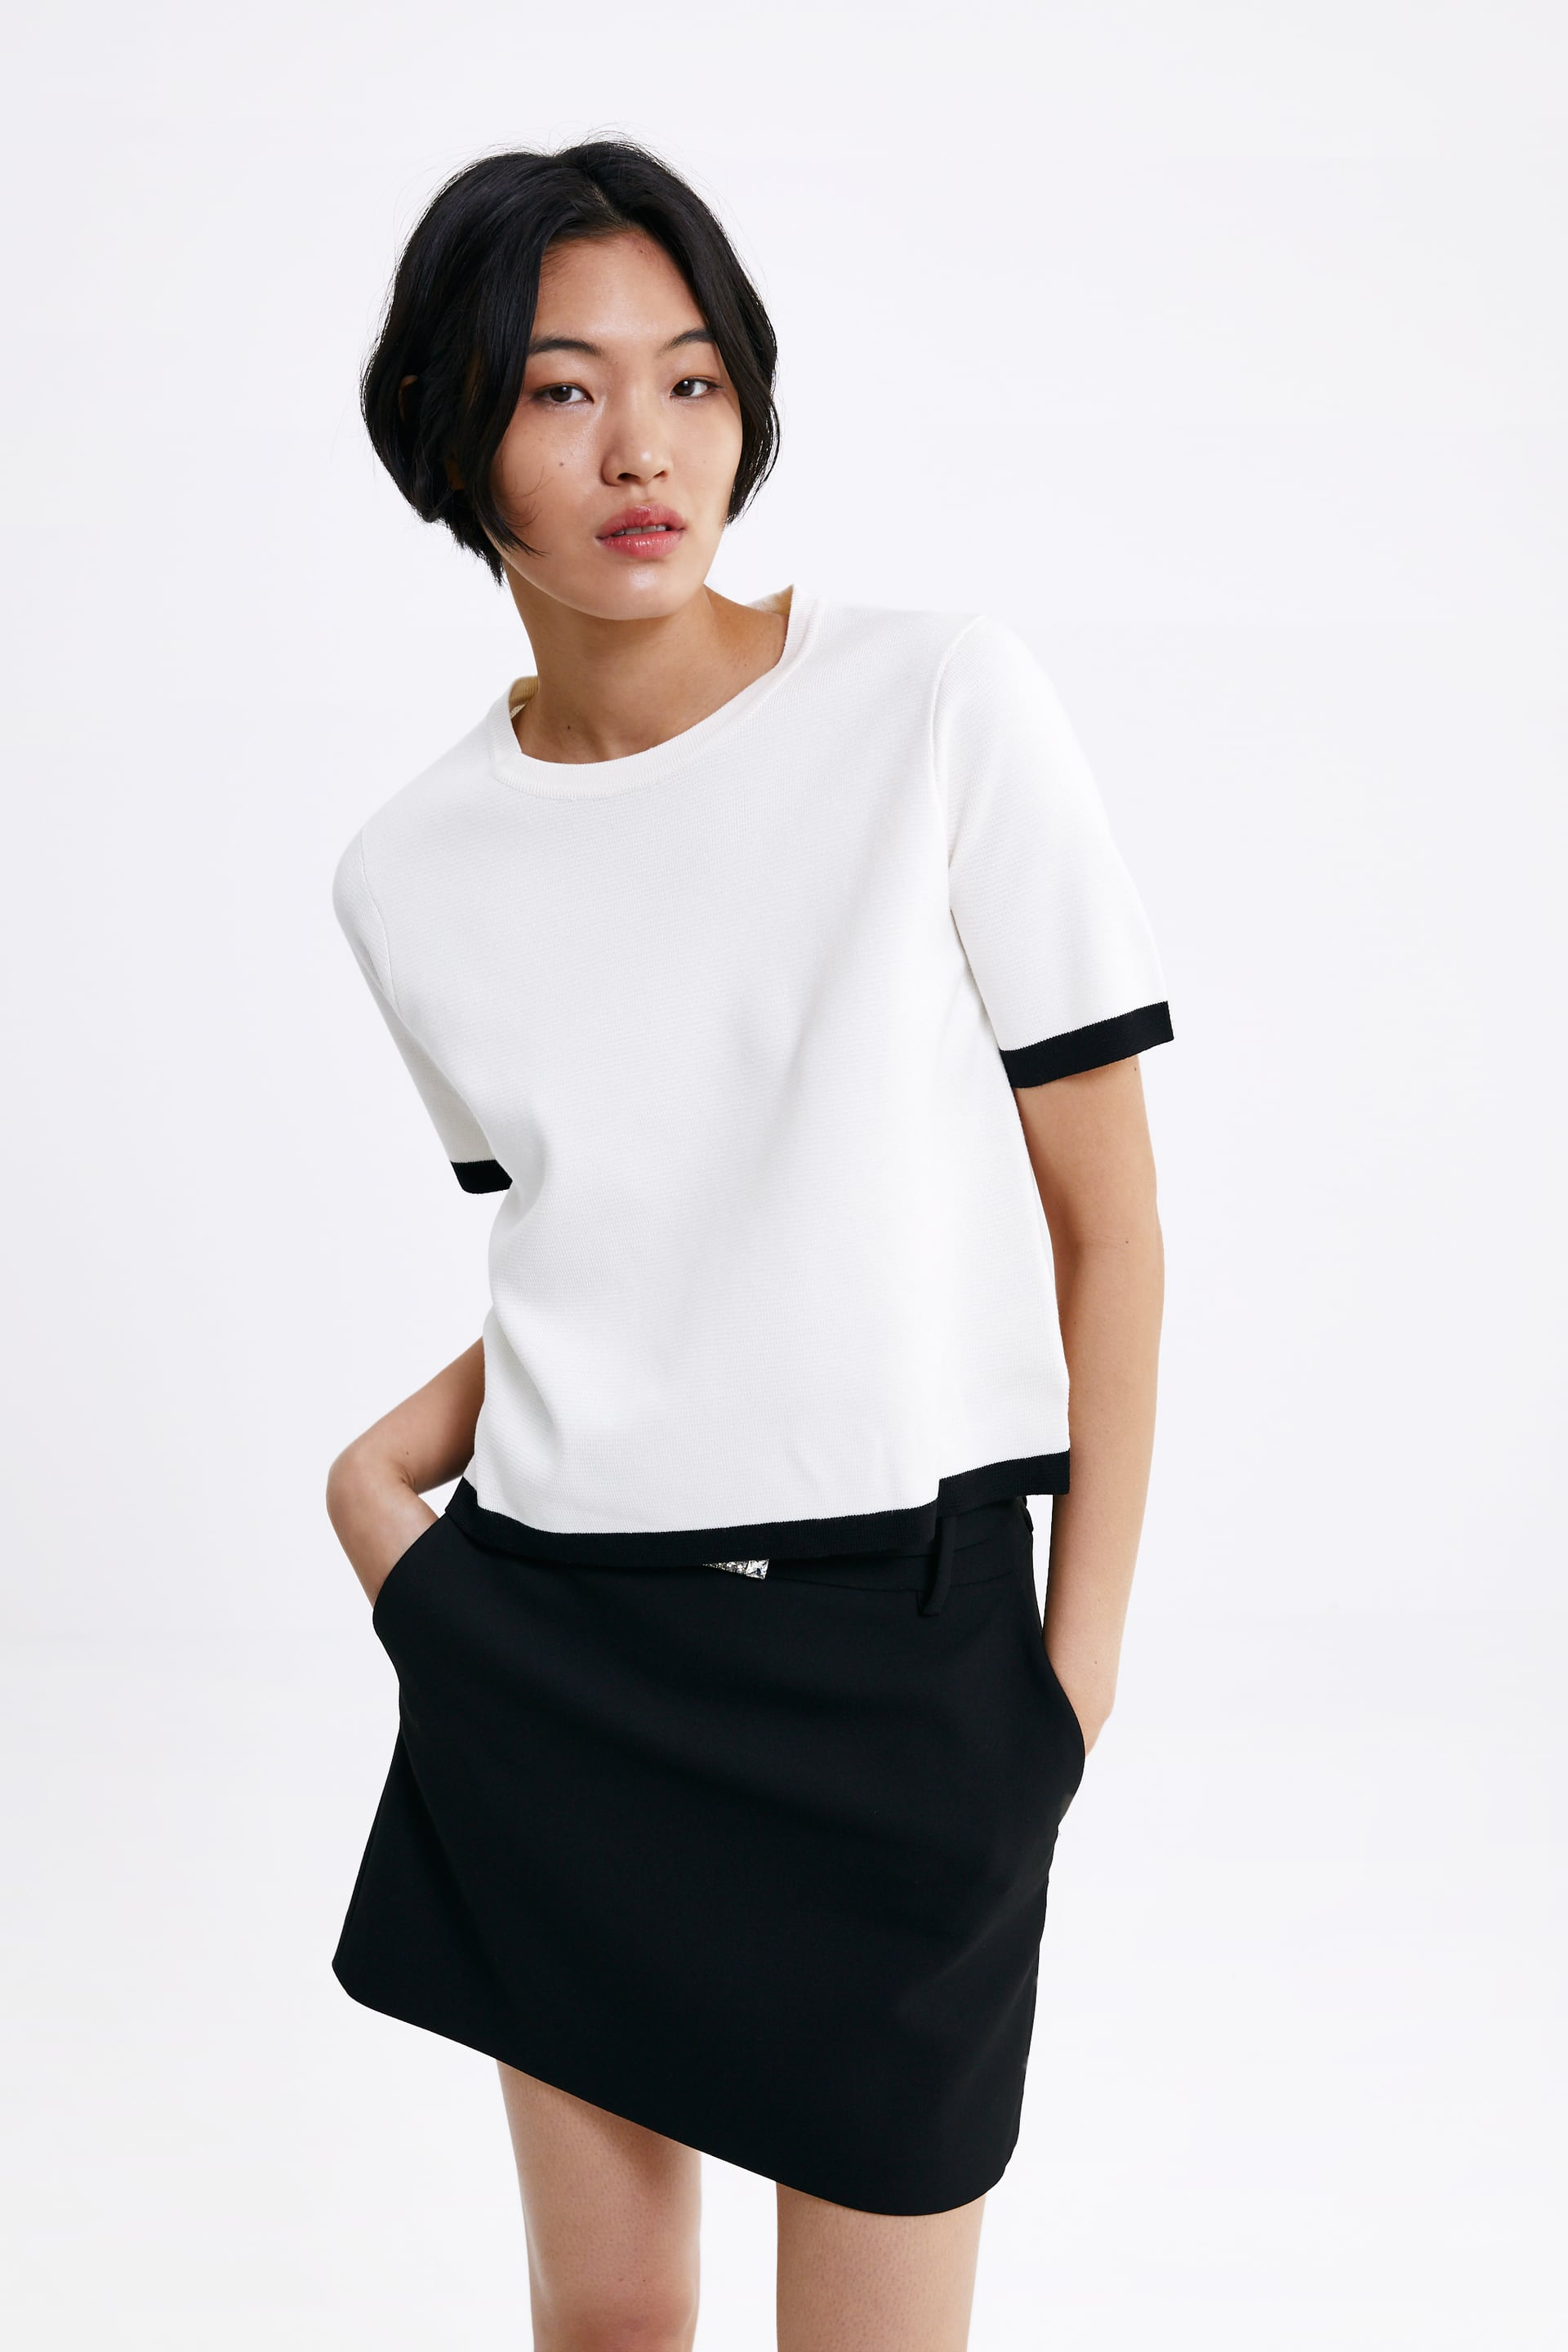 KNIT SWEATER WITH CONTRAST TRIMS 4.jpg